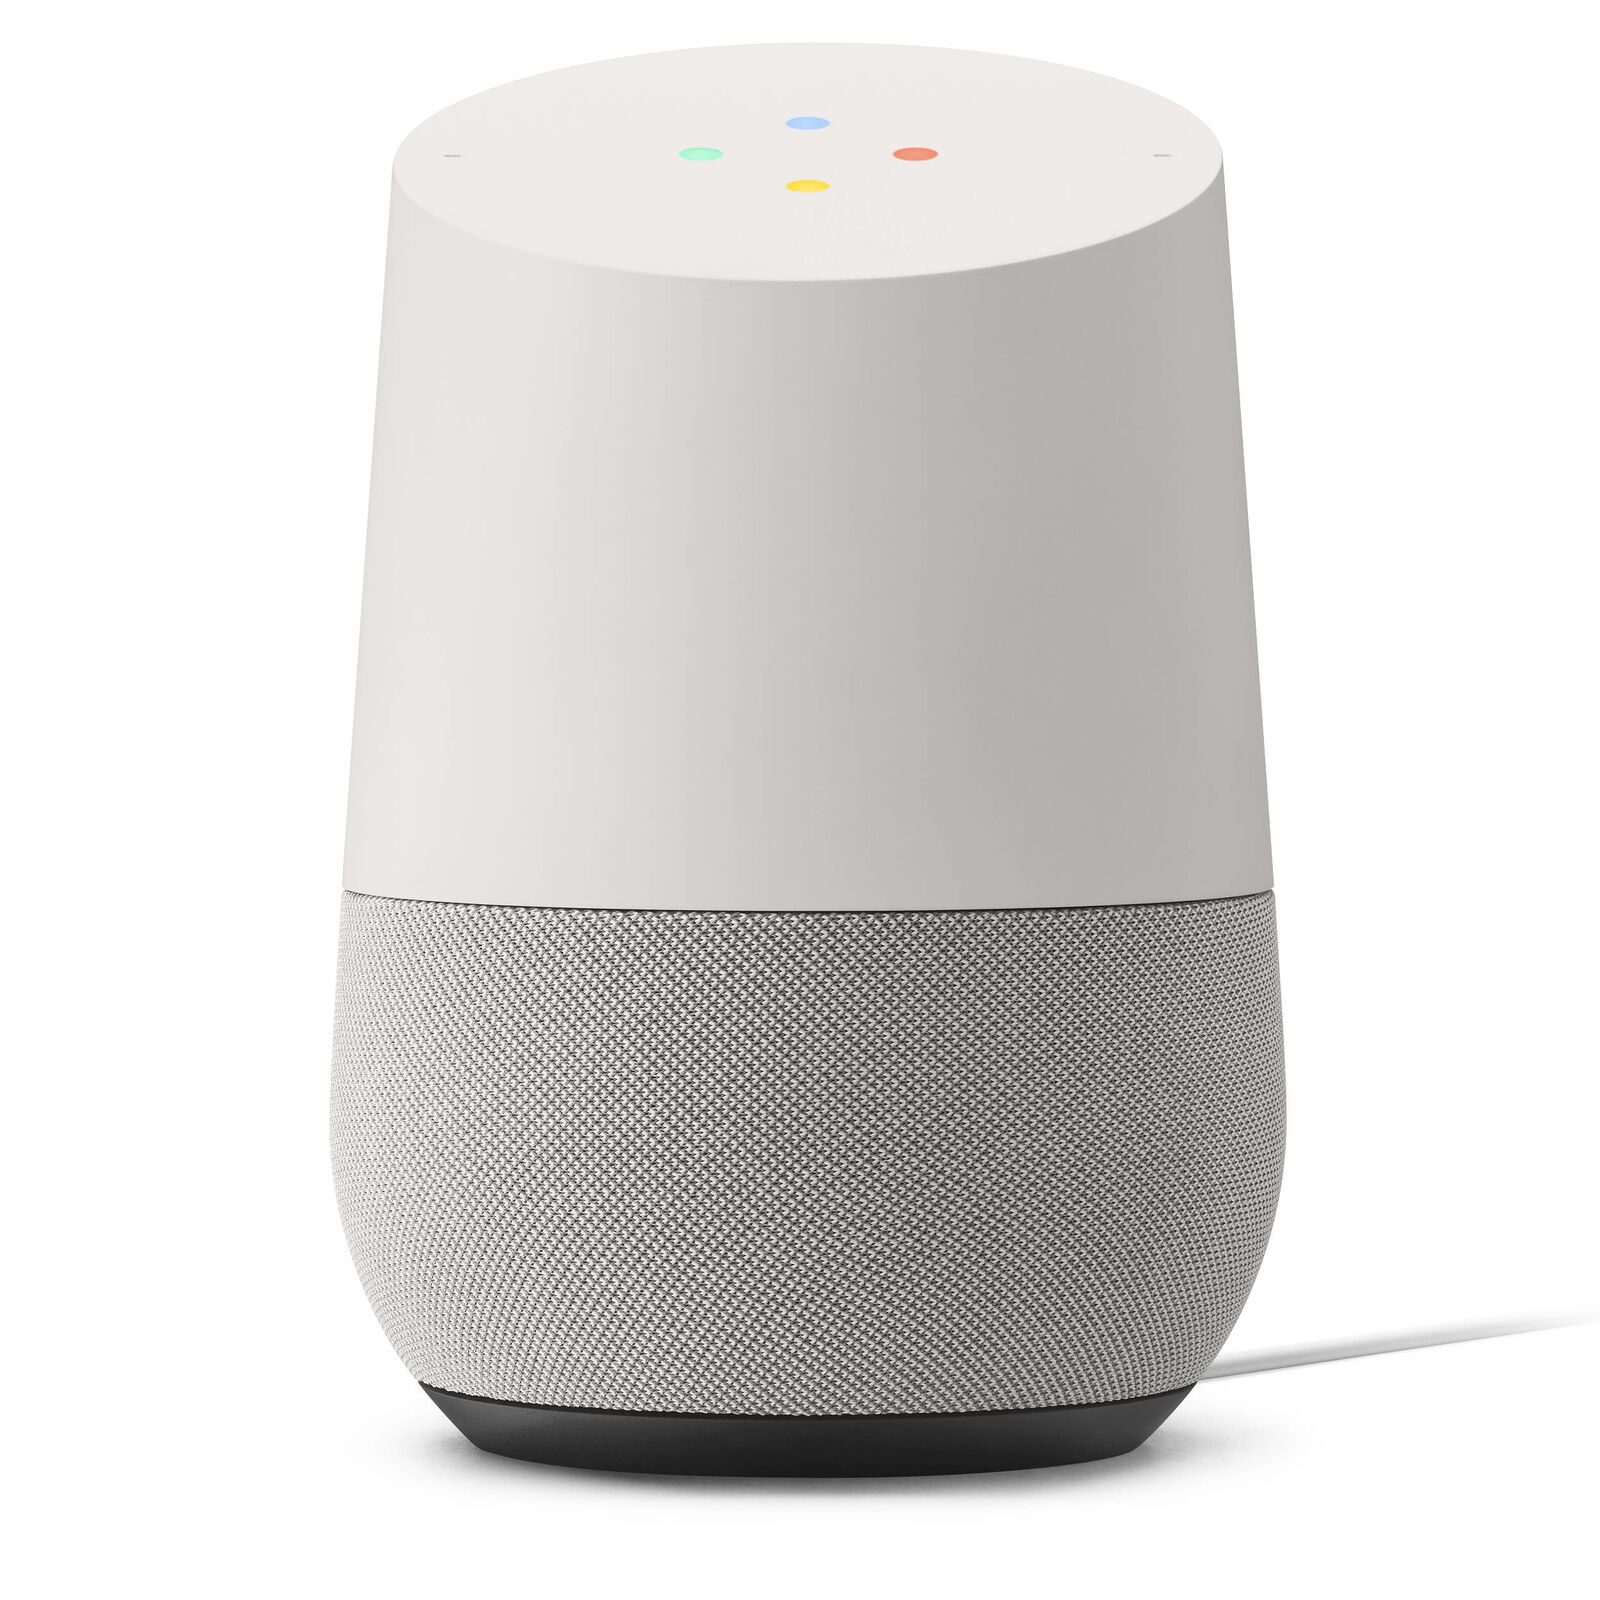 Google Home Voice- Activated Smart Assistant